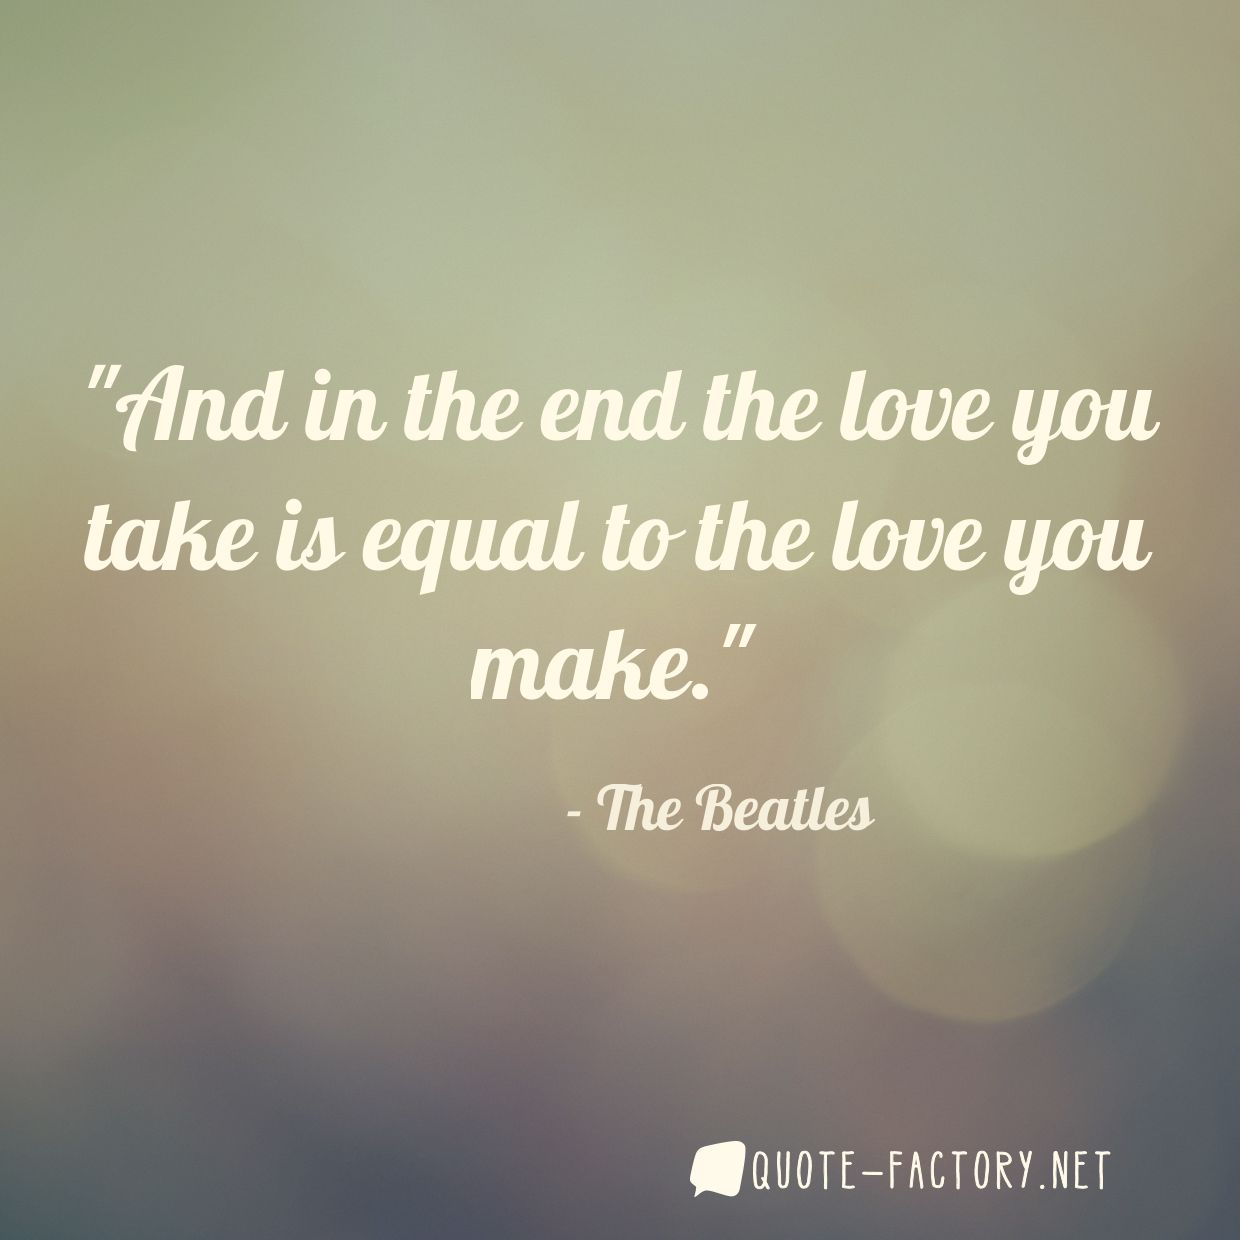 And in the end the love you take is equal to the love you make.